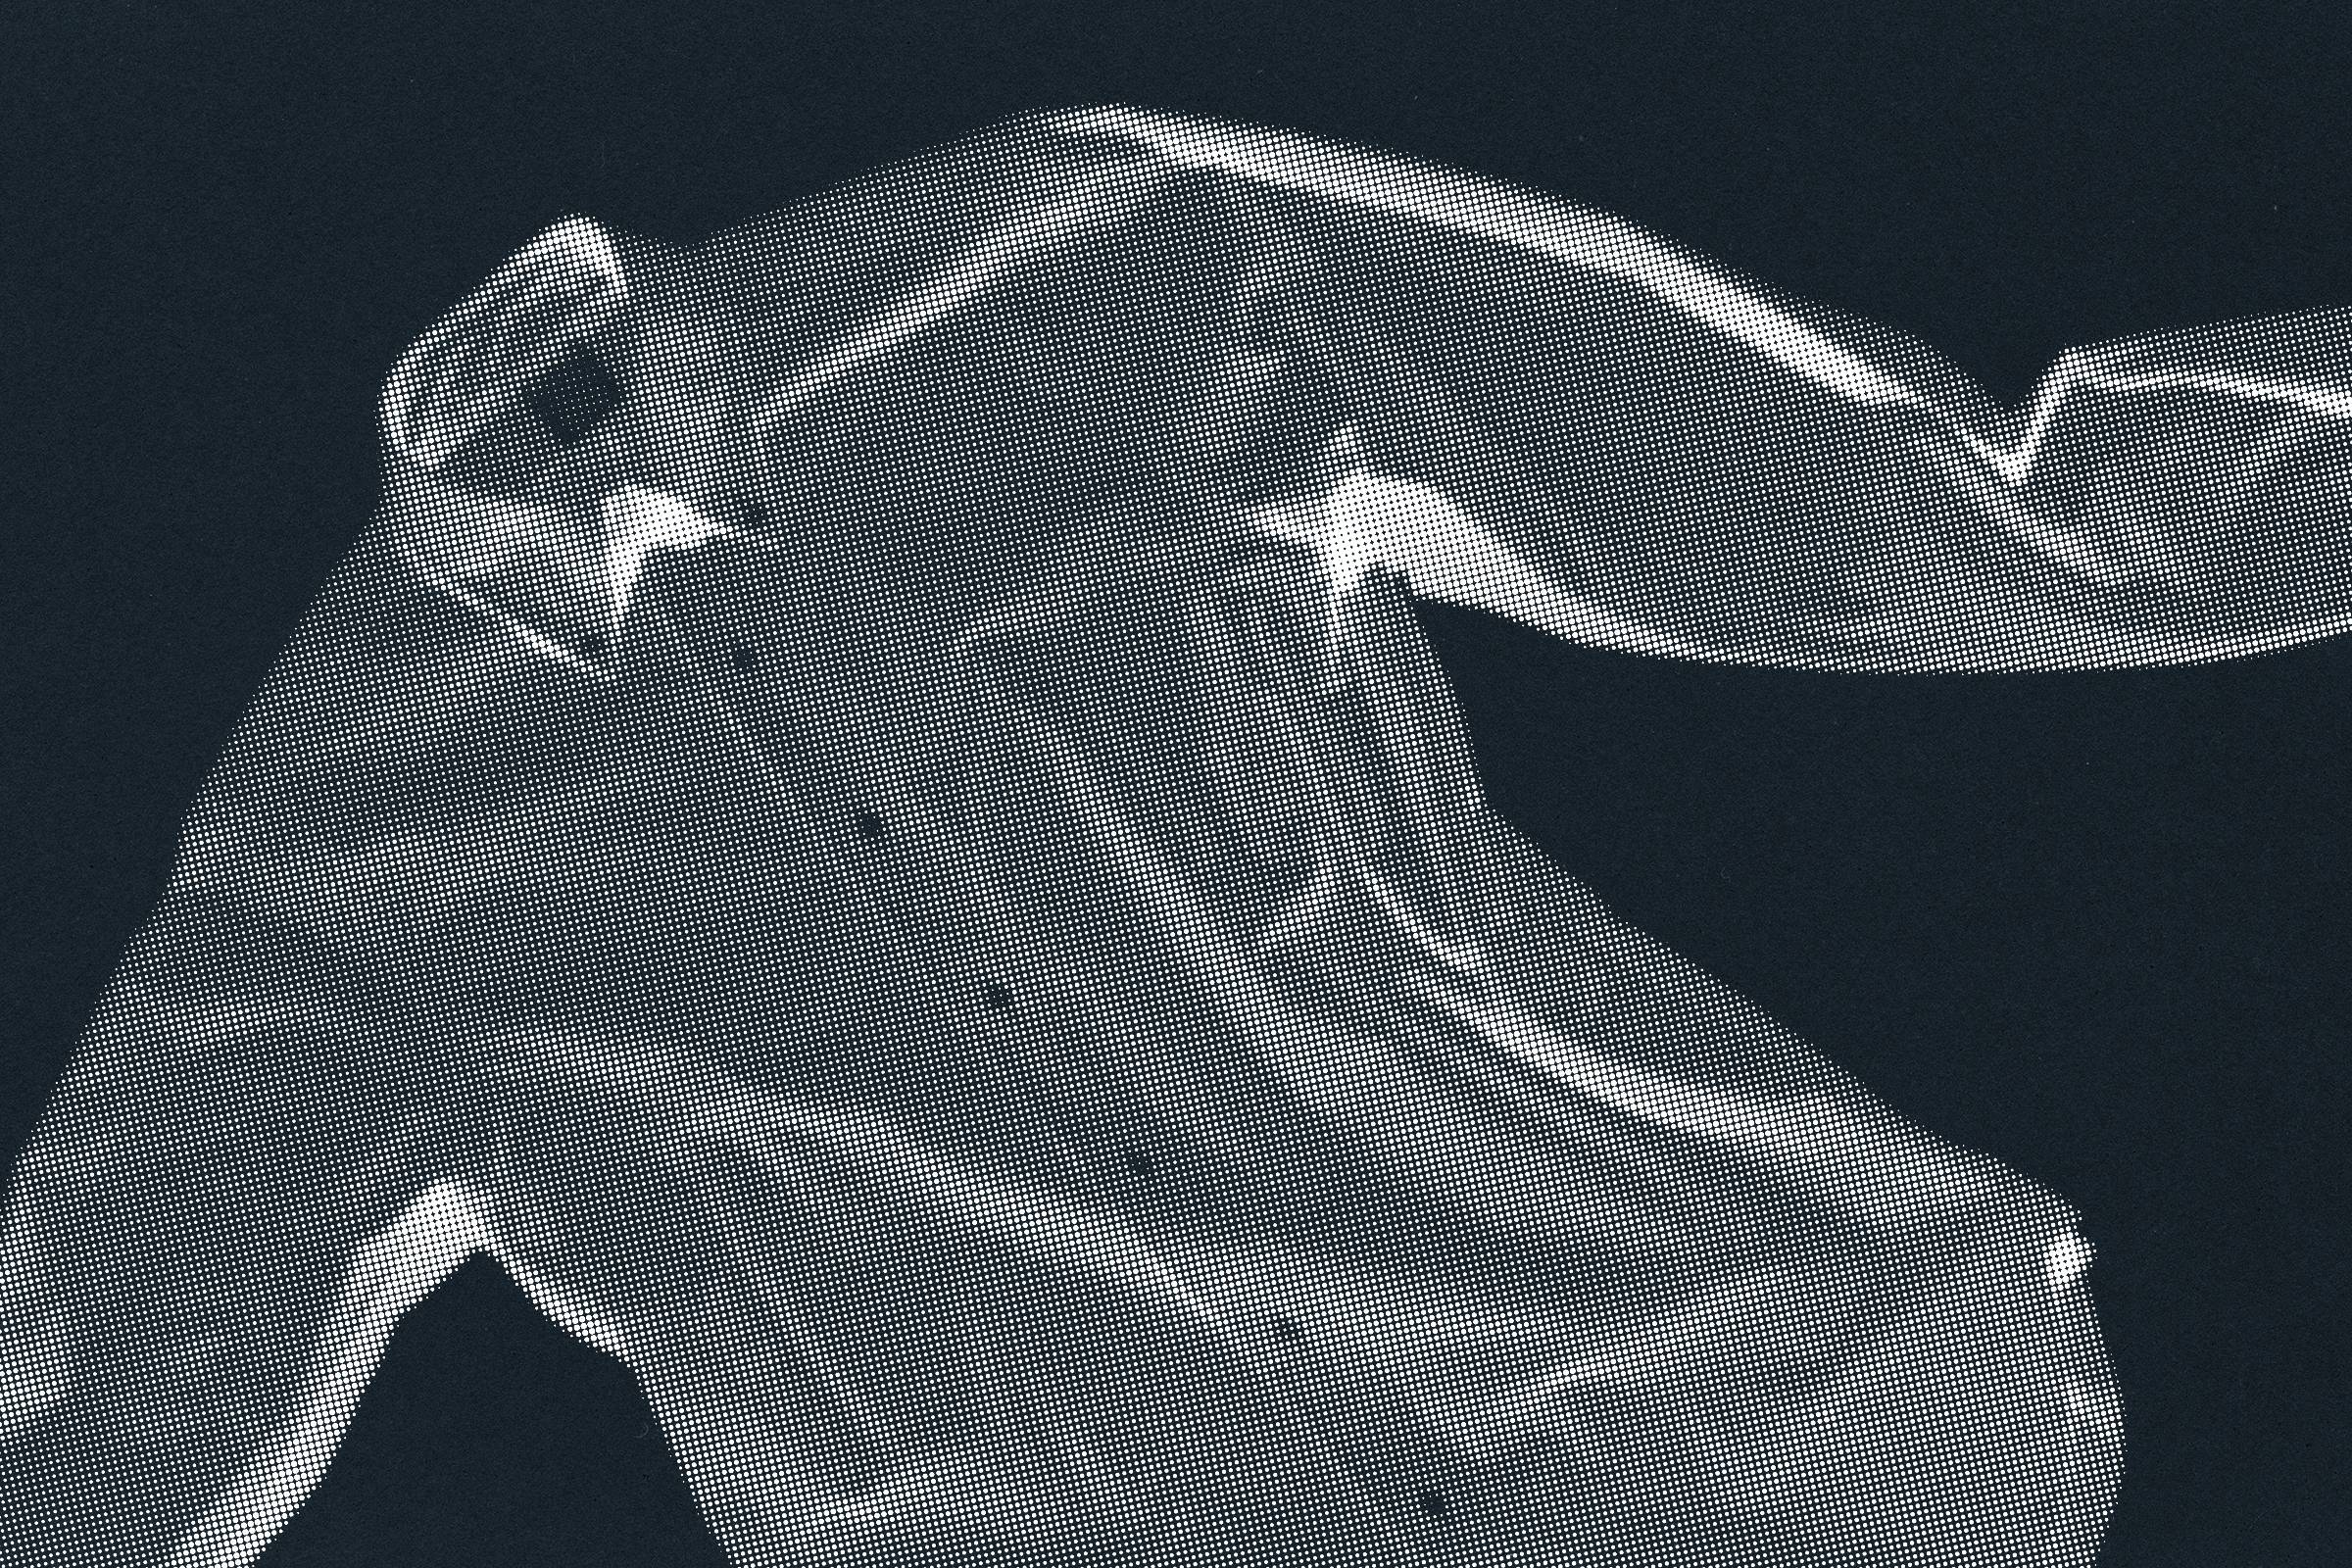 Best Dress Shirts and Button-Ups To Build Your Wardrobe On